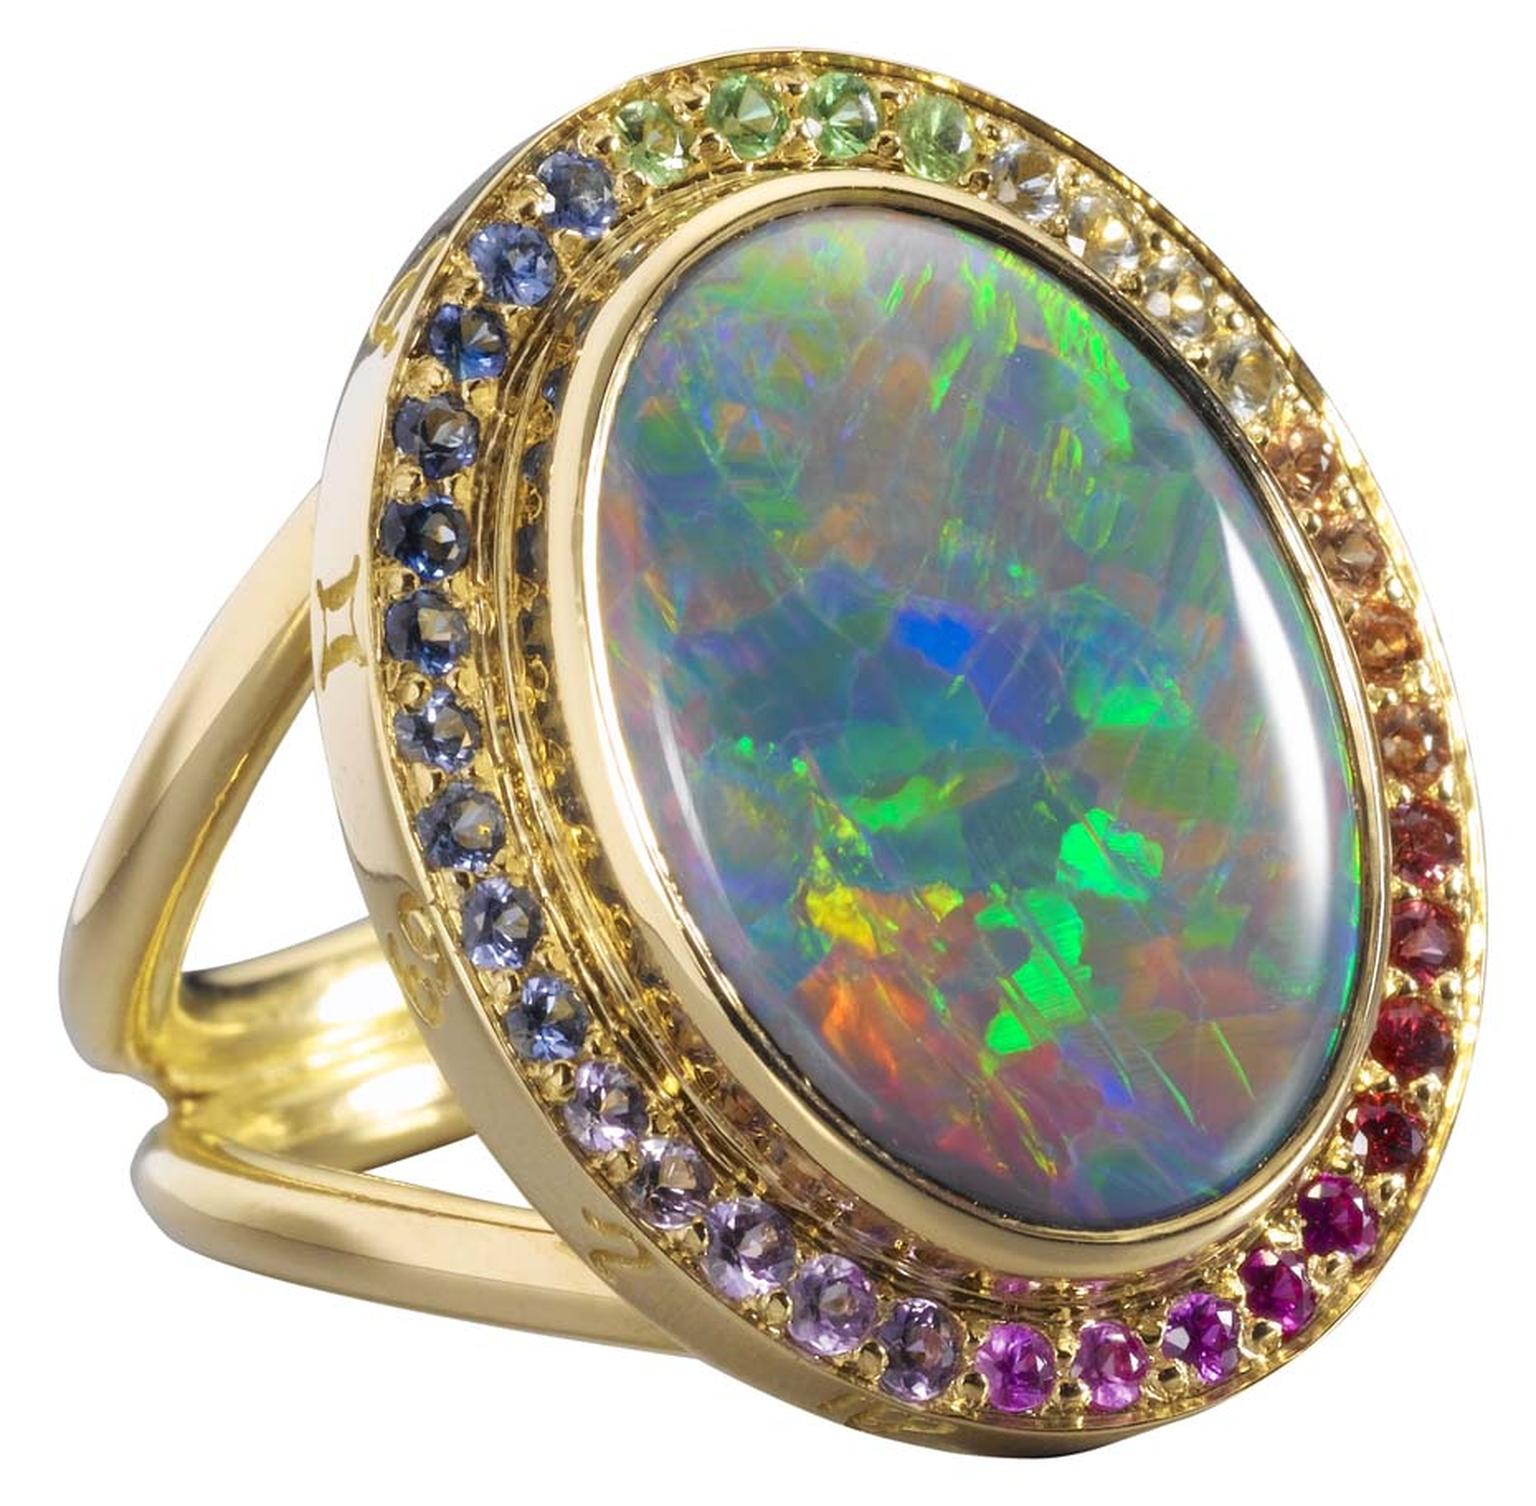 Temple St. Clair gold Astrid ring with black opal and mix colour sapphire